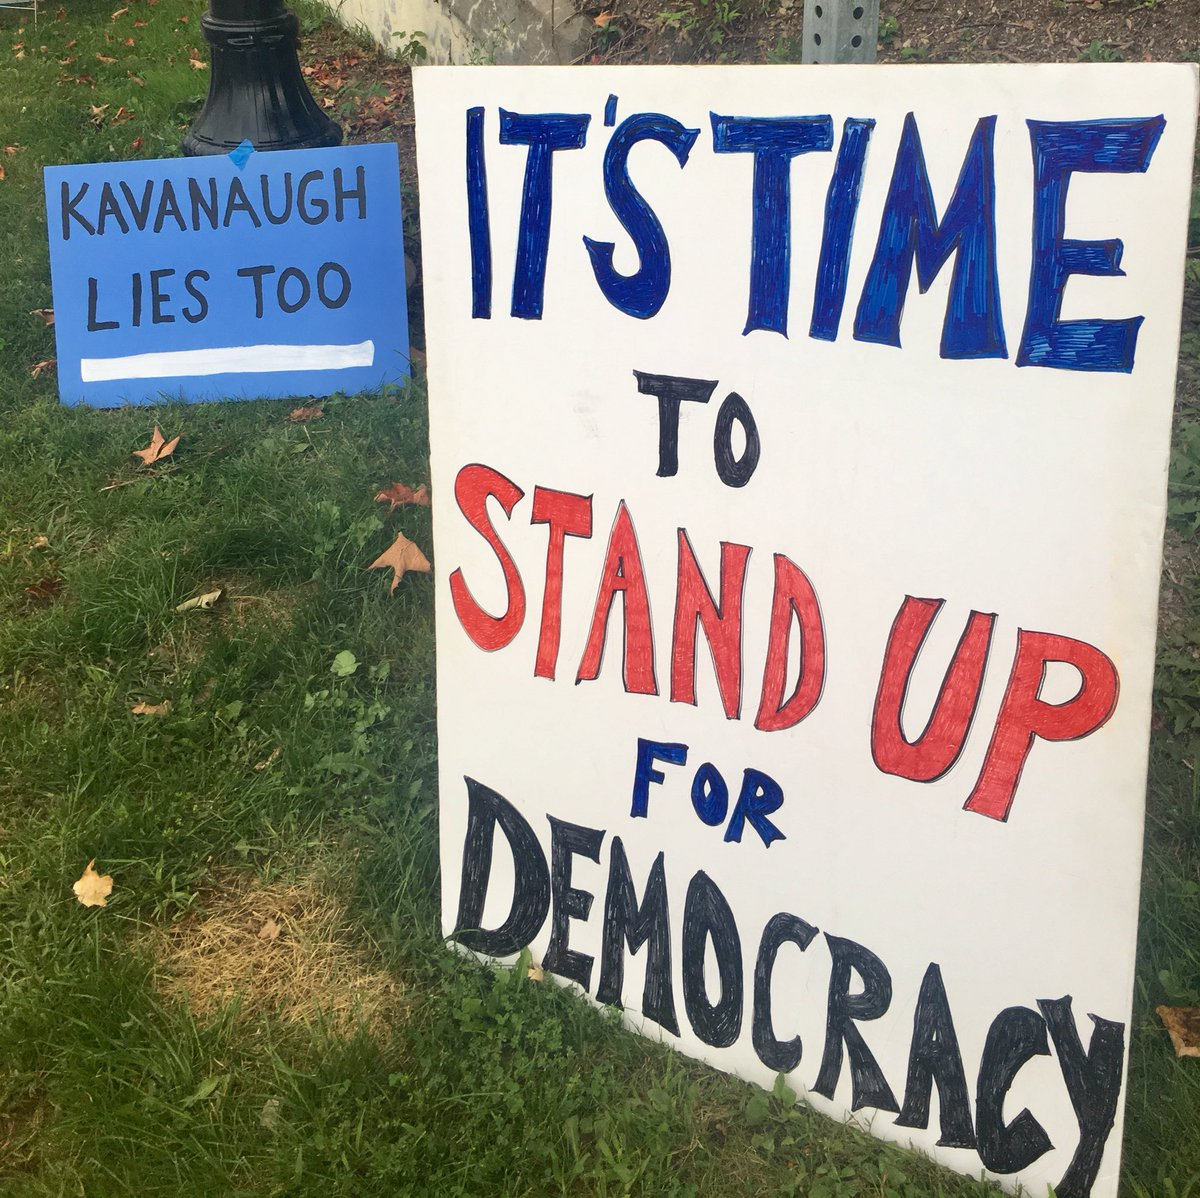 #StandOnEveryCorner  Waterbury, VT Day 29 Ok, my friends, I'll confess... I went out there angry and cynical  tonight. Without a lot of hope. I had my hat brim down low and my sign up high, hiding, pissed. And I almost chased down the first guy who gave me flack. But.... <br>http://pic.twitter.com/H3gmfX2DlZ